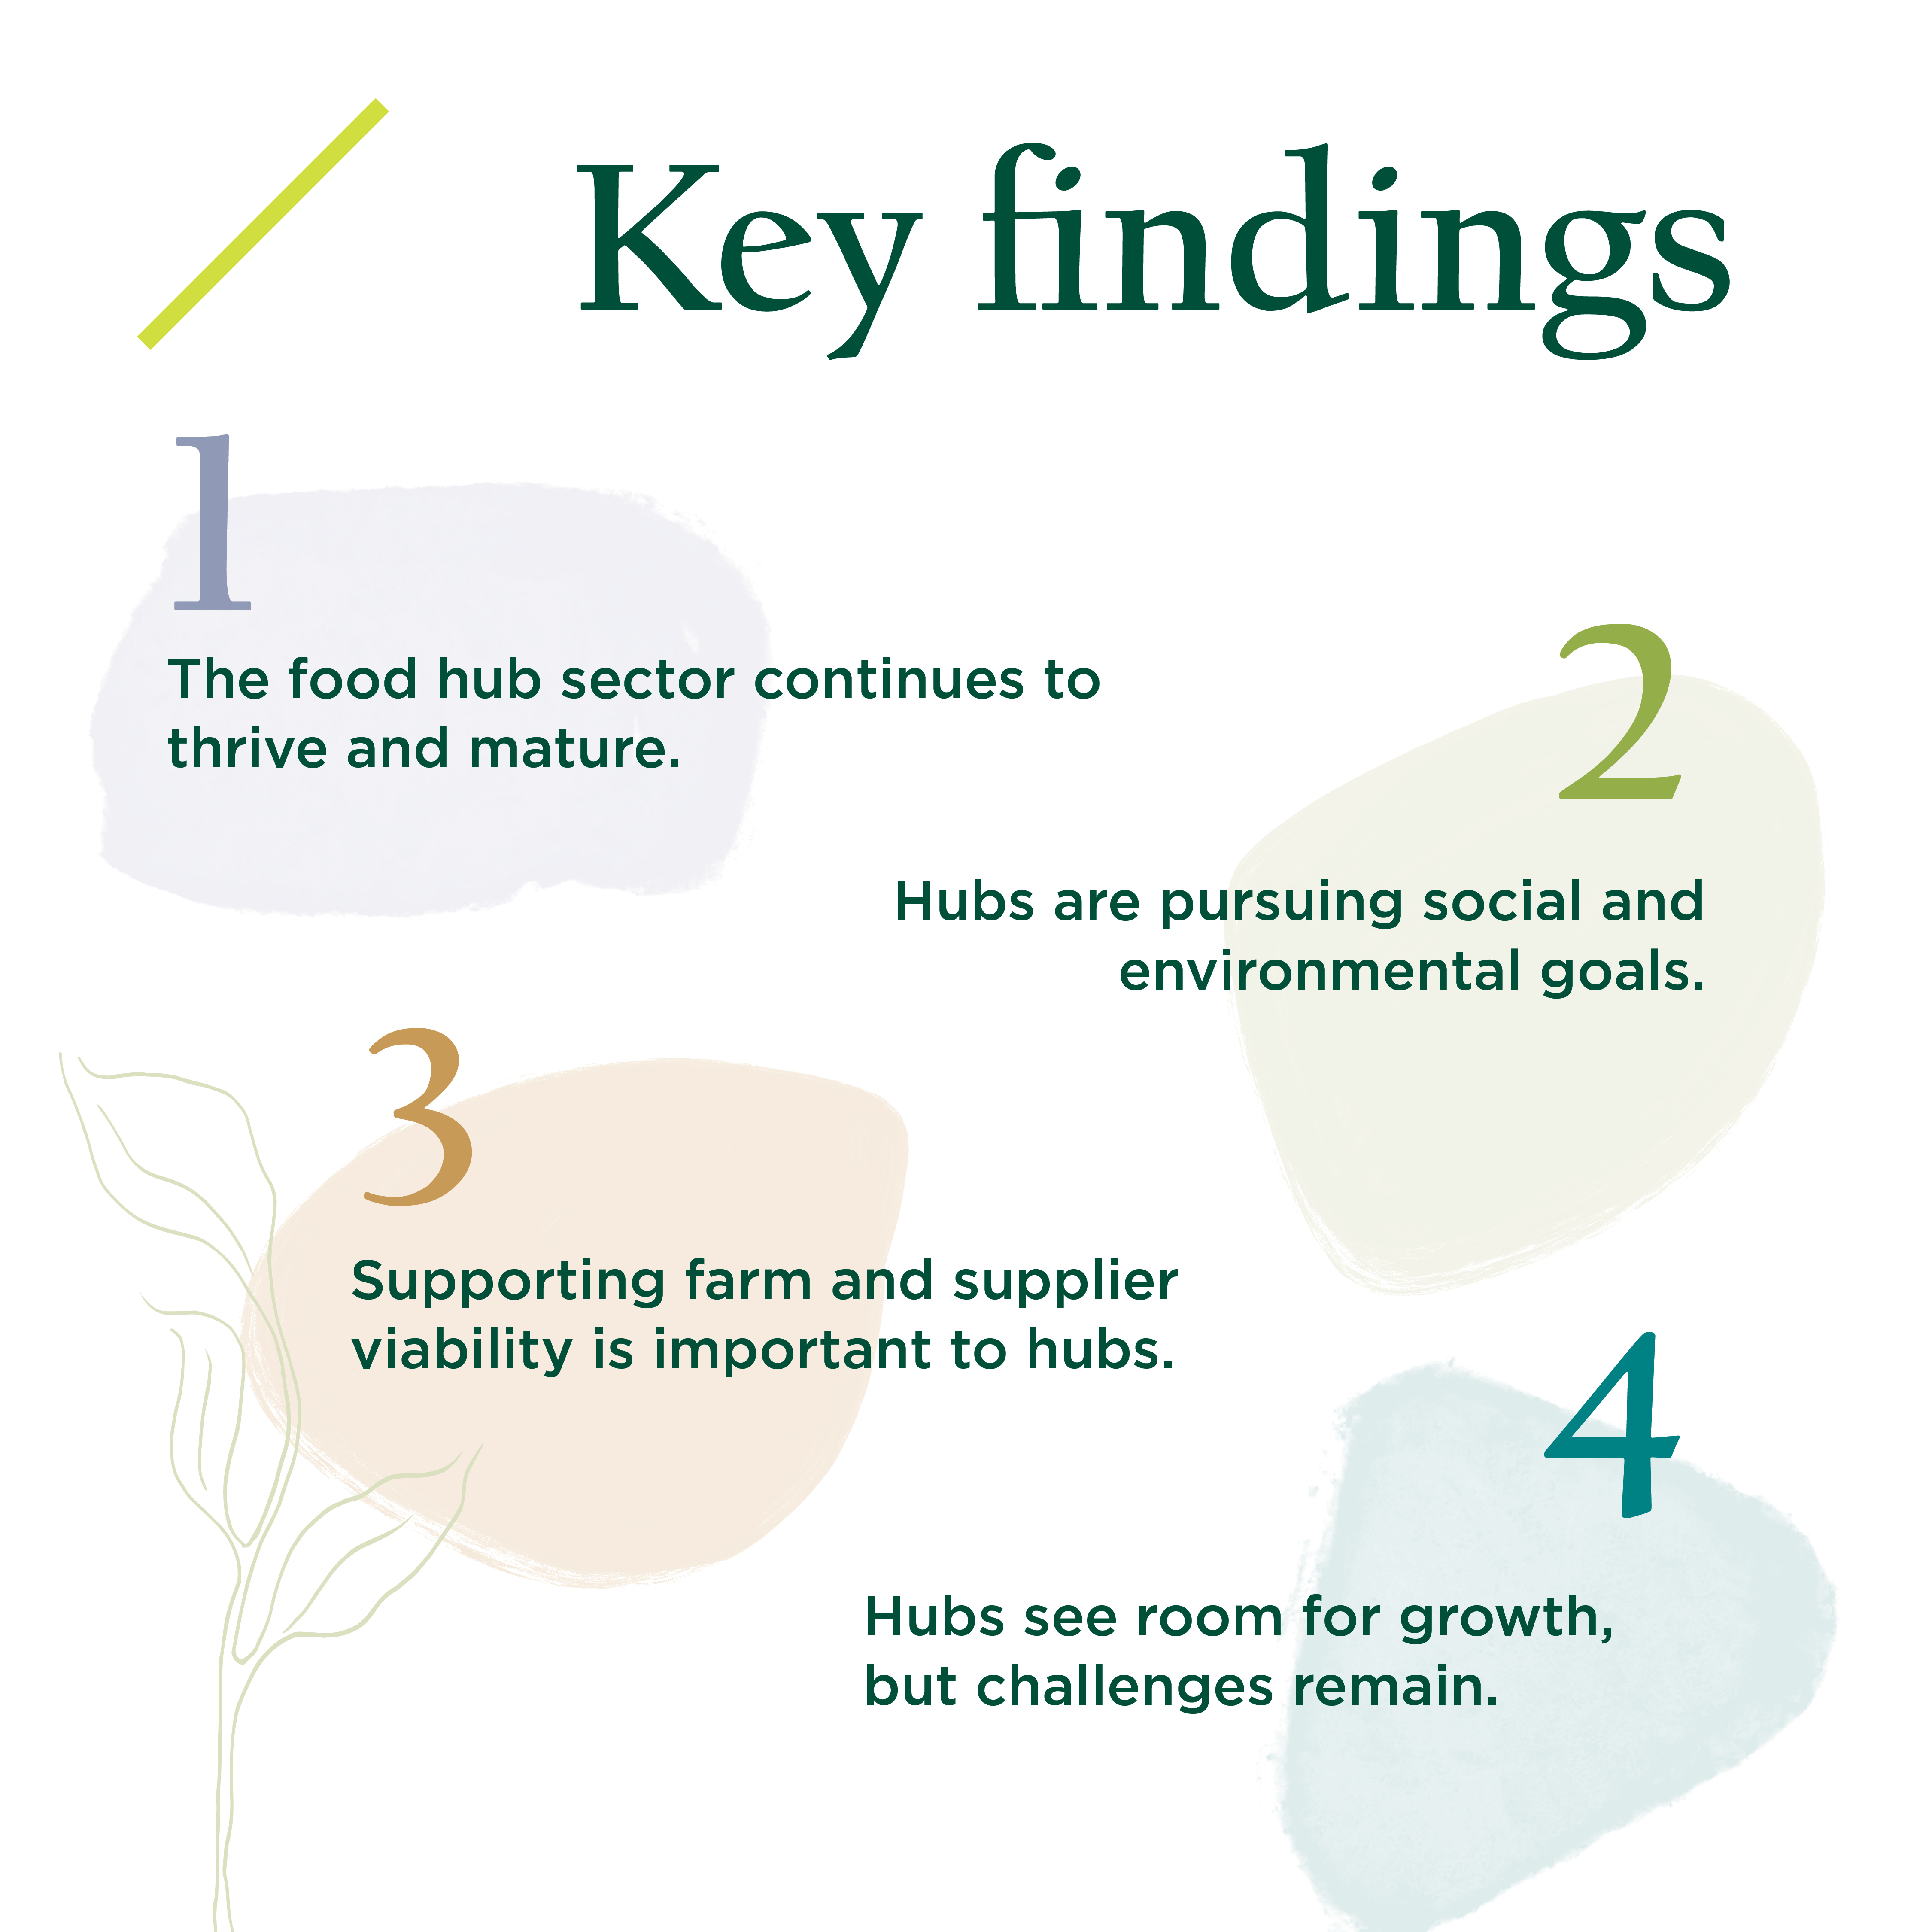 Four key findings of the 2019 National Food Hub Survey. 1. The food hub sector continues to thrive and mature. 2. Hubs are pursuing social and environmental goals. 3. Supporting farm and supplier viability is important to hubs.4. Hubs see room for growth, but challenges remain.